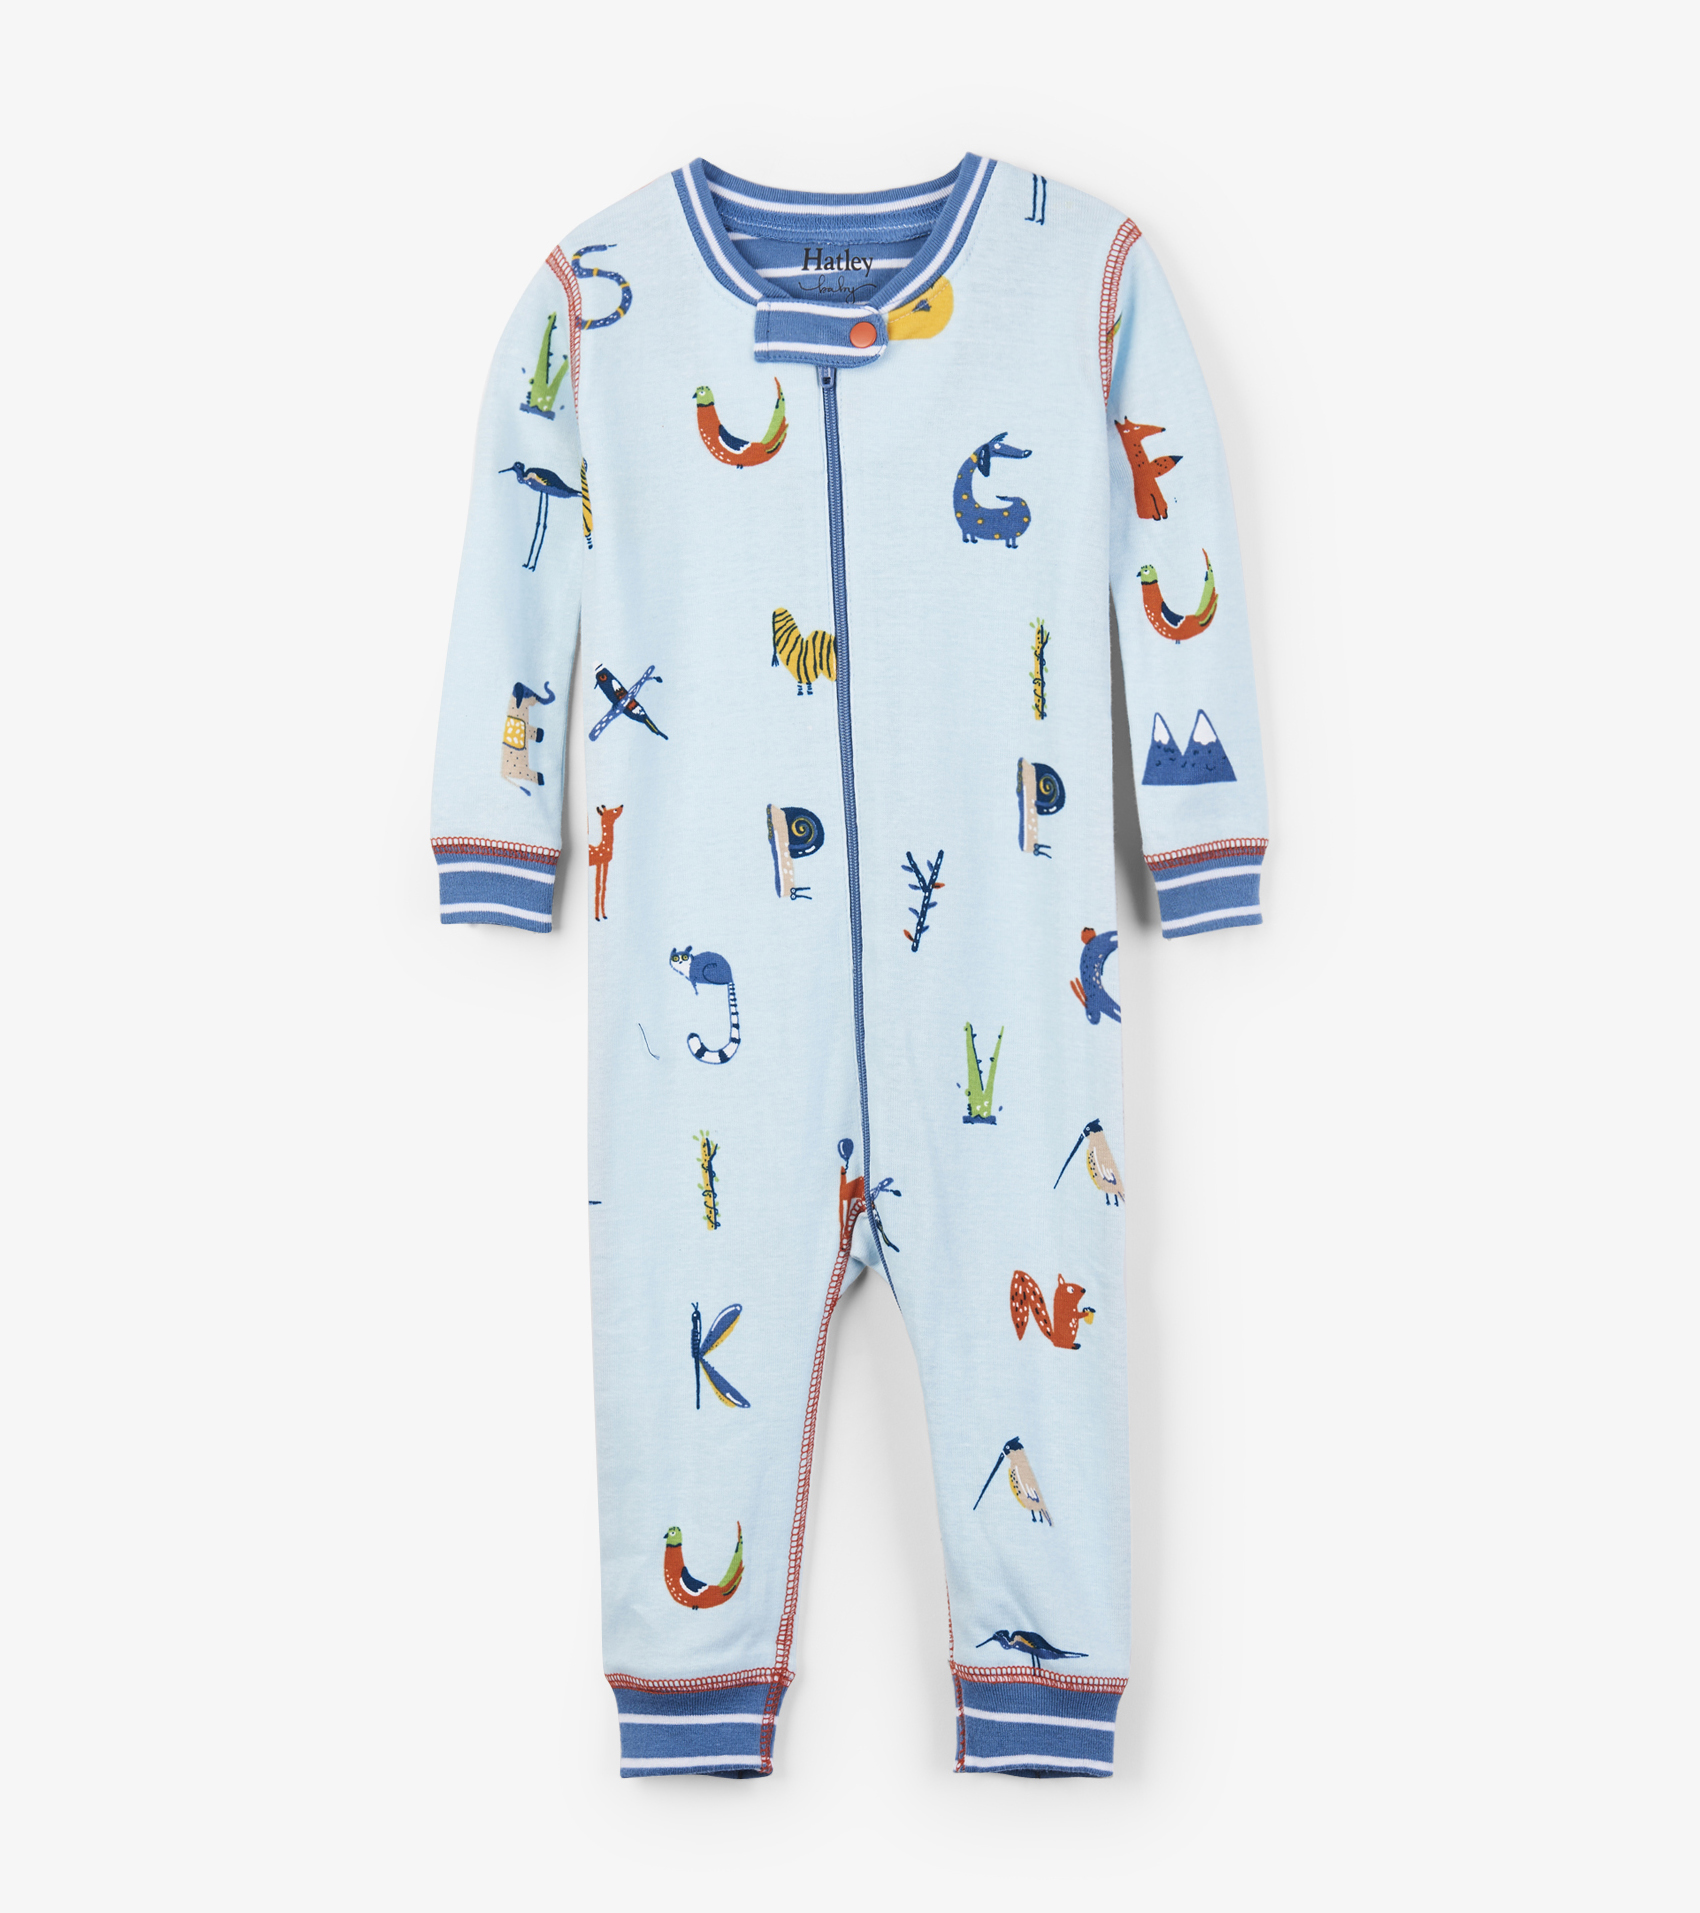 Hatley Babygro Footless - Alphabet Animals